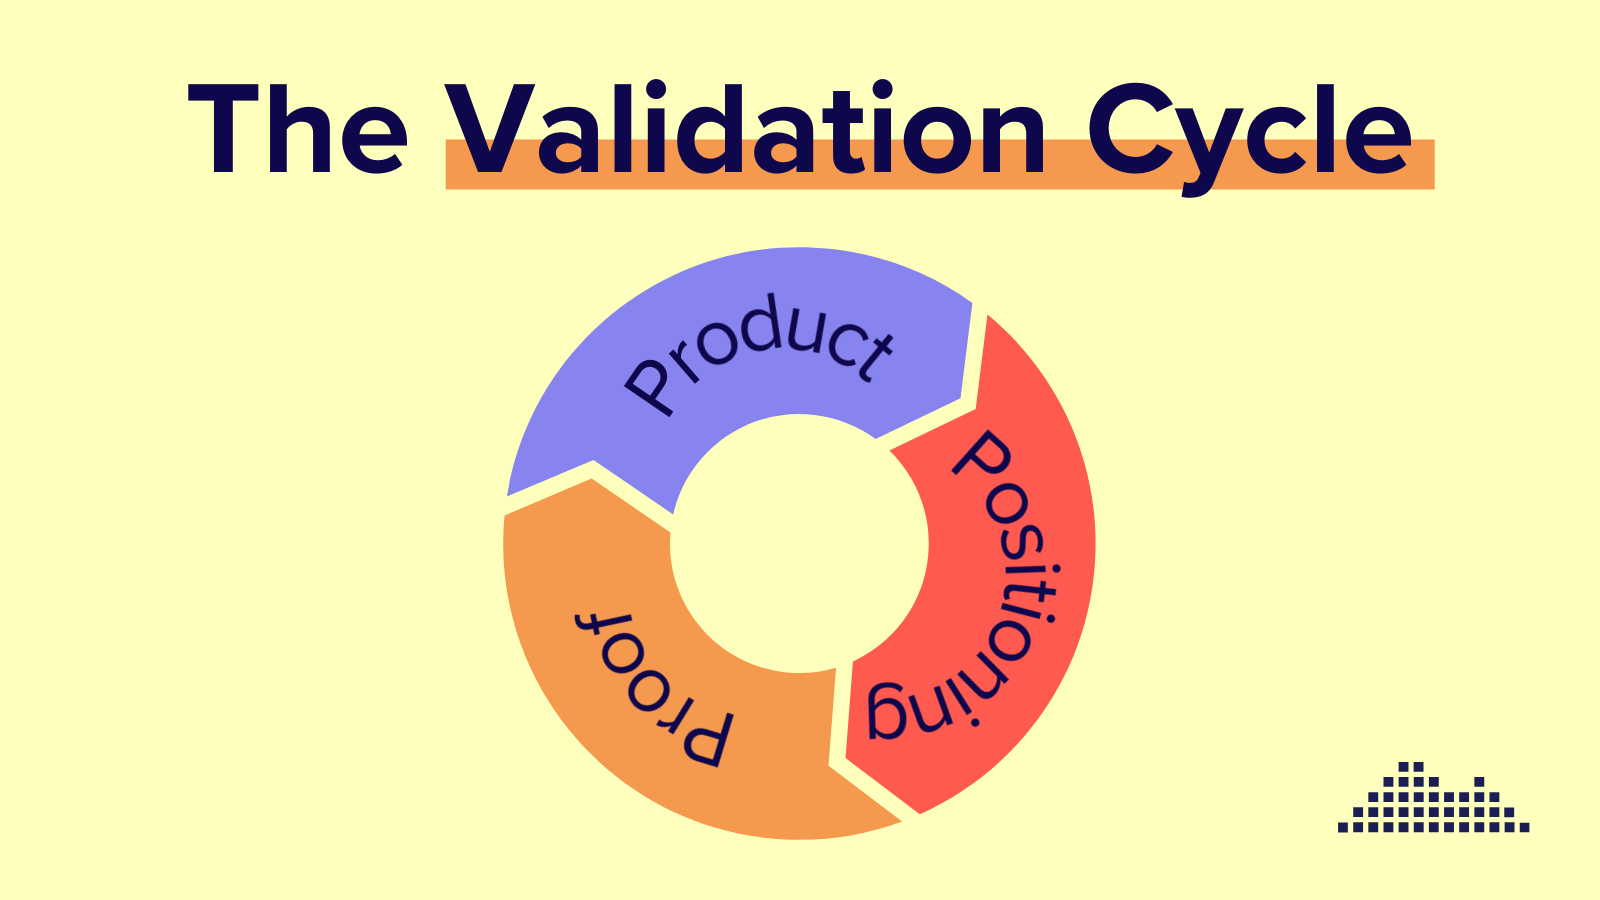 The Validation with Product, Positioning and Proof in a cycle diagram.